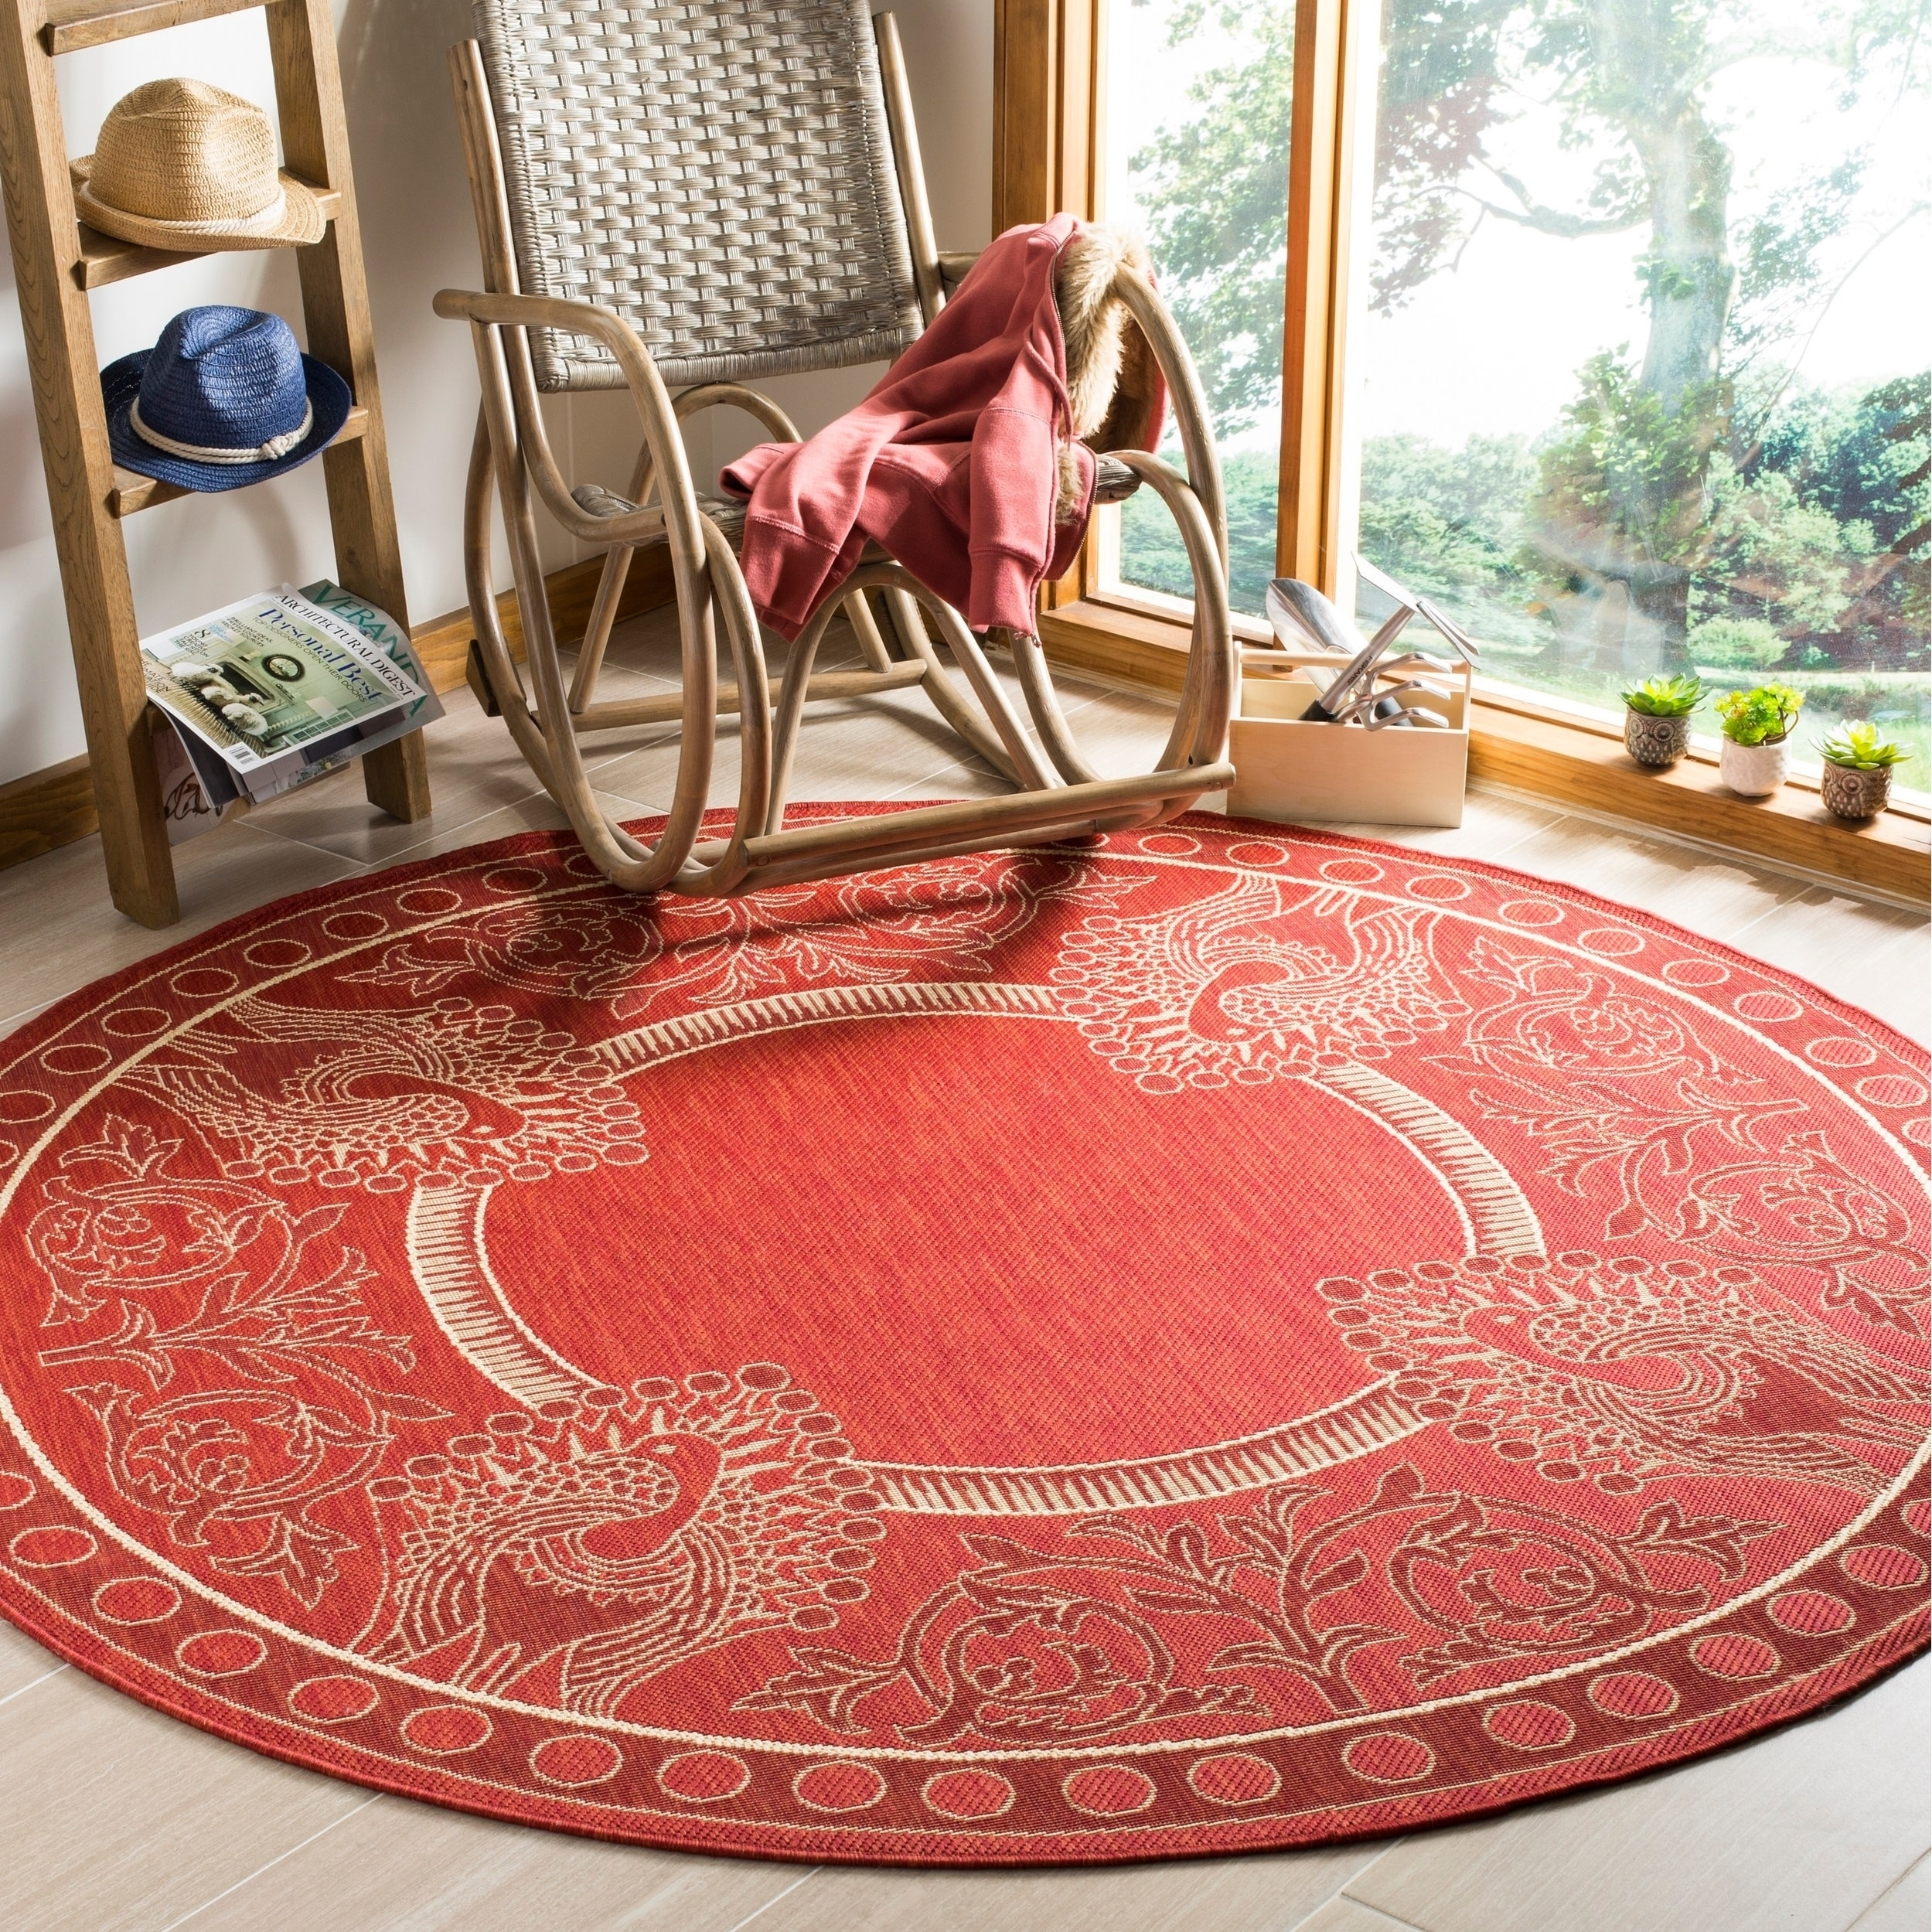 Round Outdoor Plastic Rugs: Safavieh Abaco Red/ Natural Indoor/ Outdoor Rug (5'3 Round